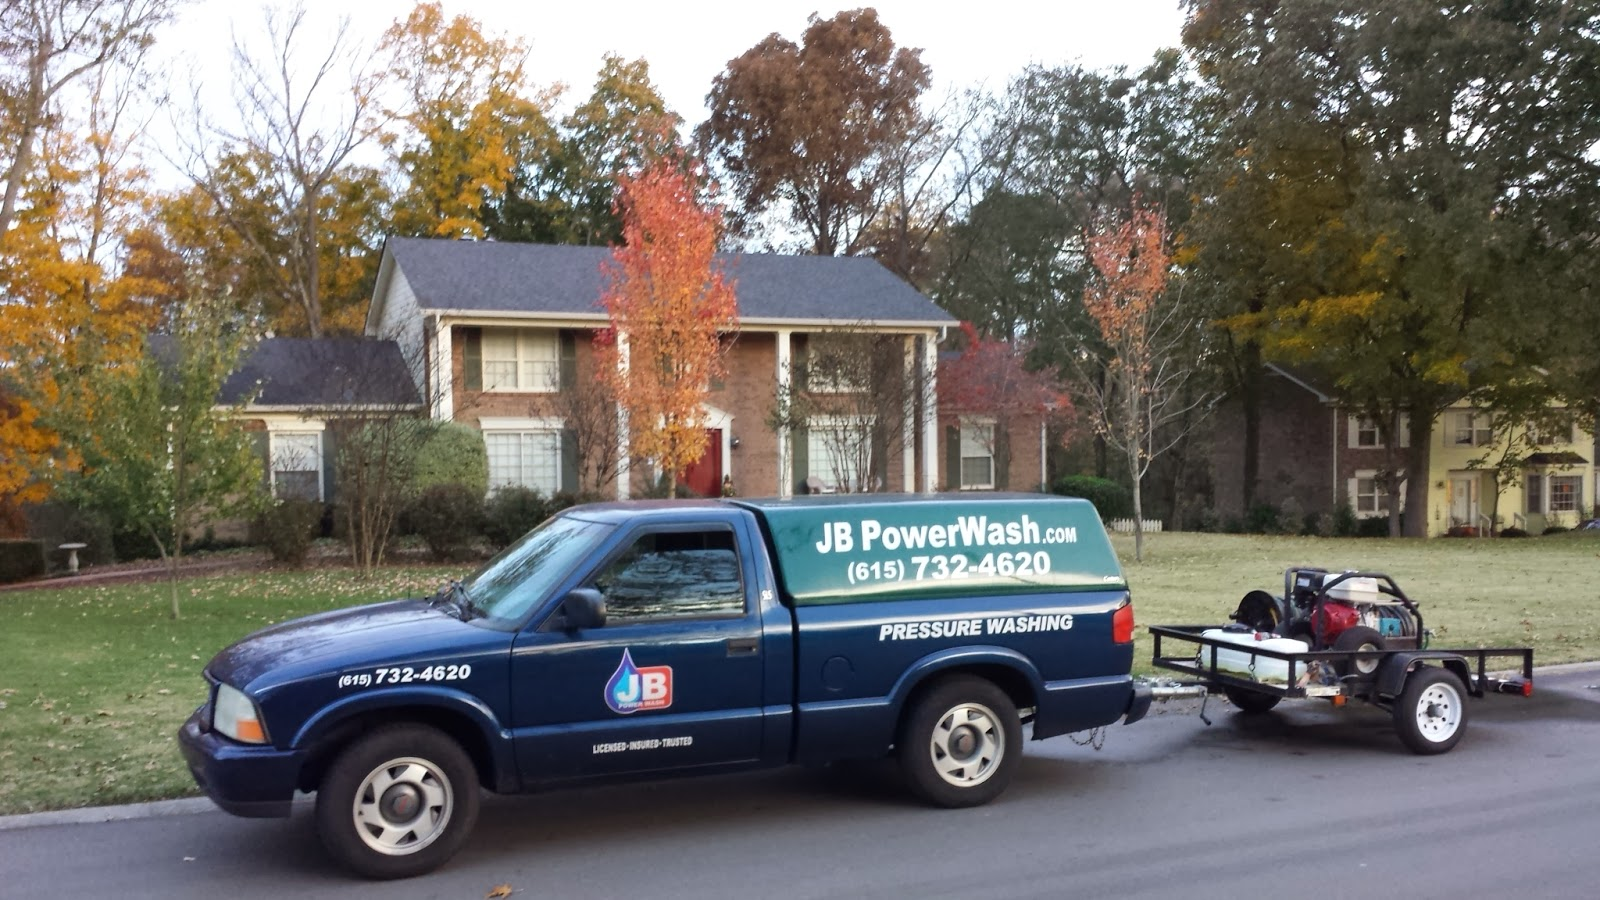 JB Power Wash is the Top Rated Pressure Washing Services Company in Nashville, Tennessee.